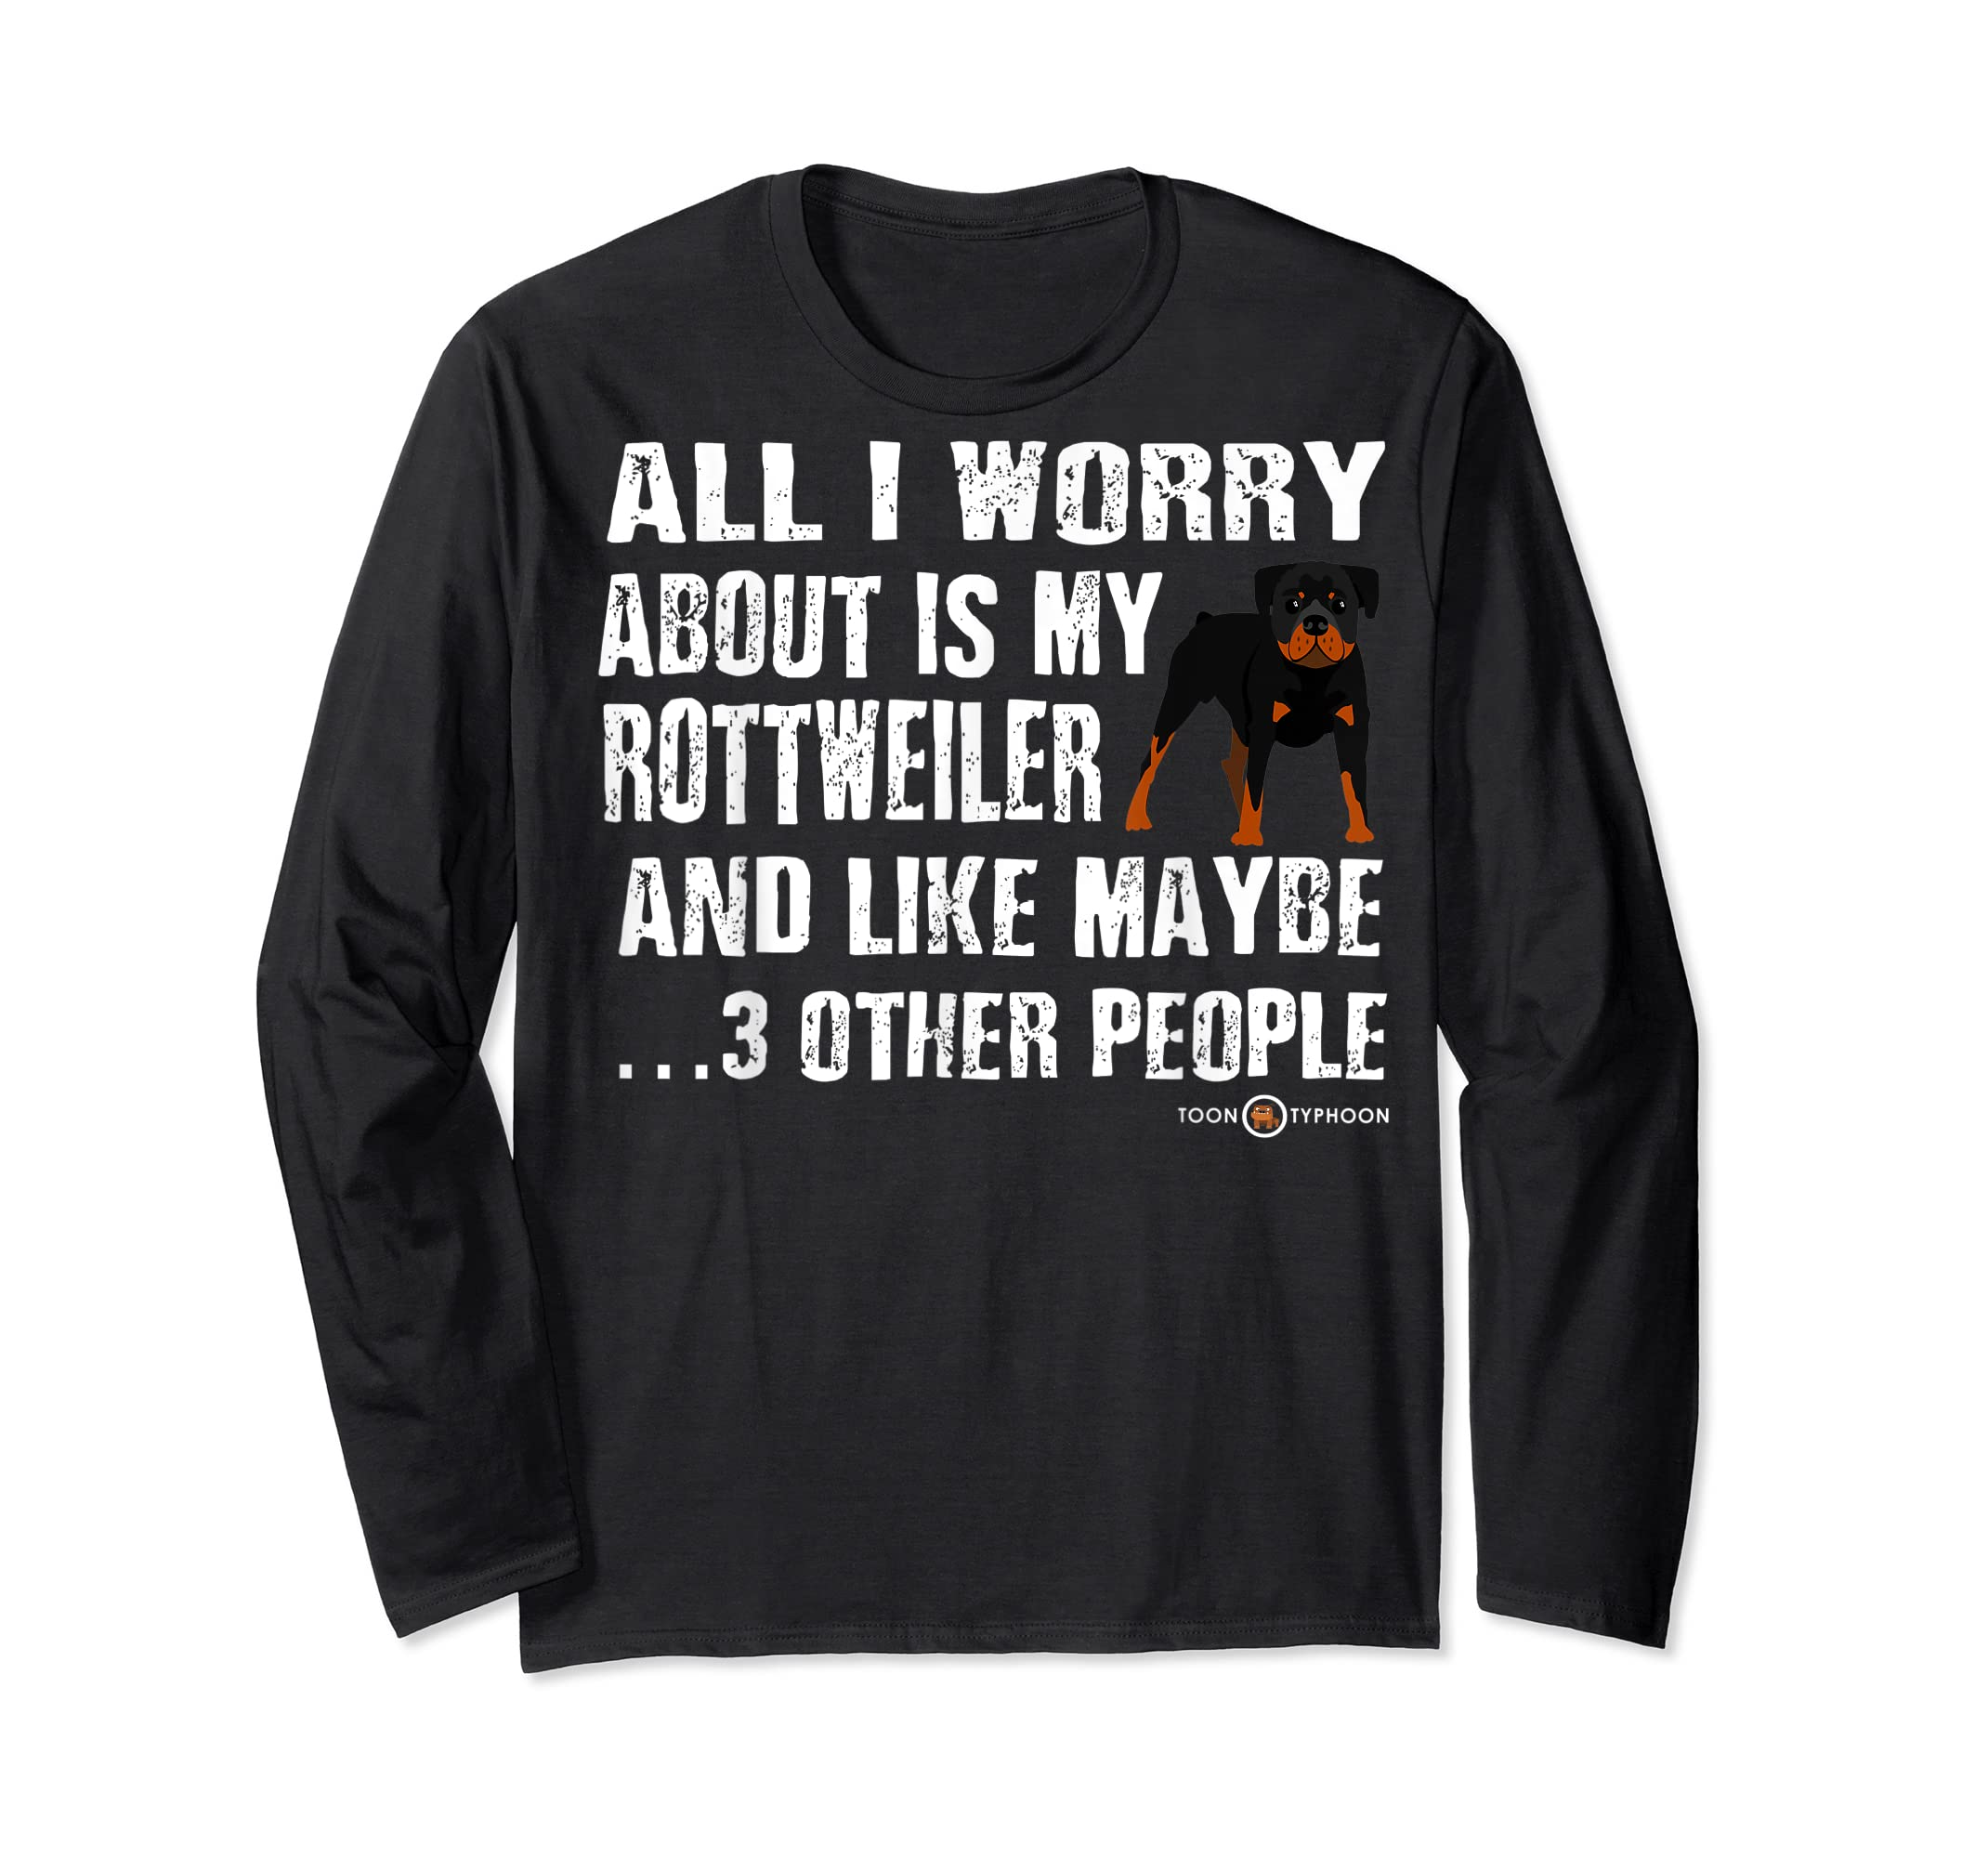 Rottweiler Shirt | All I worry about is my Rottweiler-Long Sleeve-Black